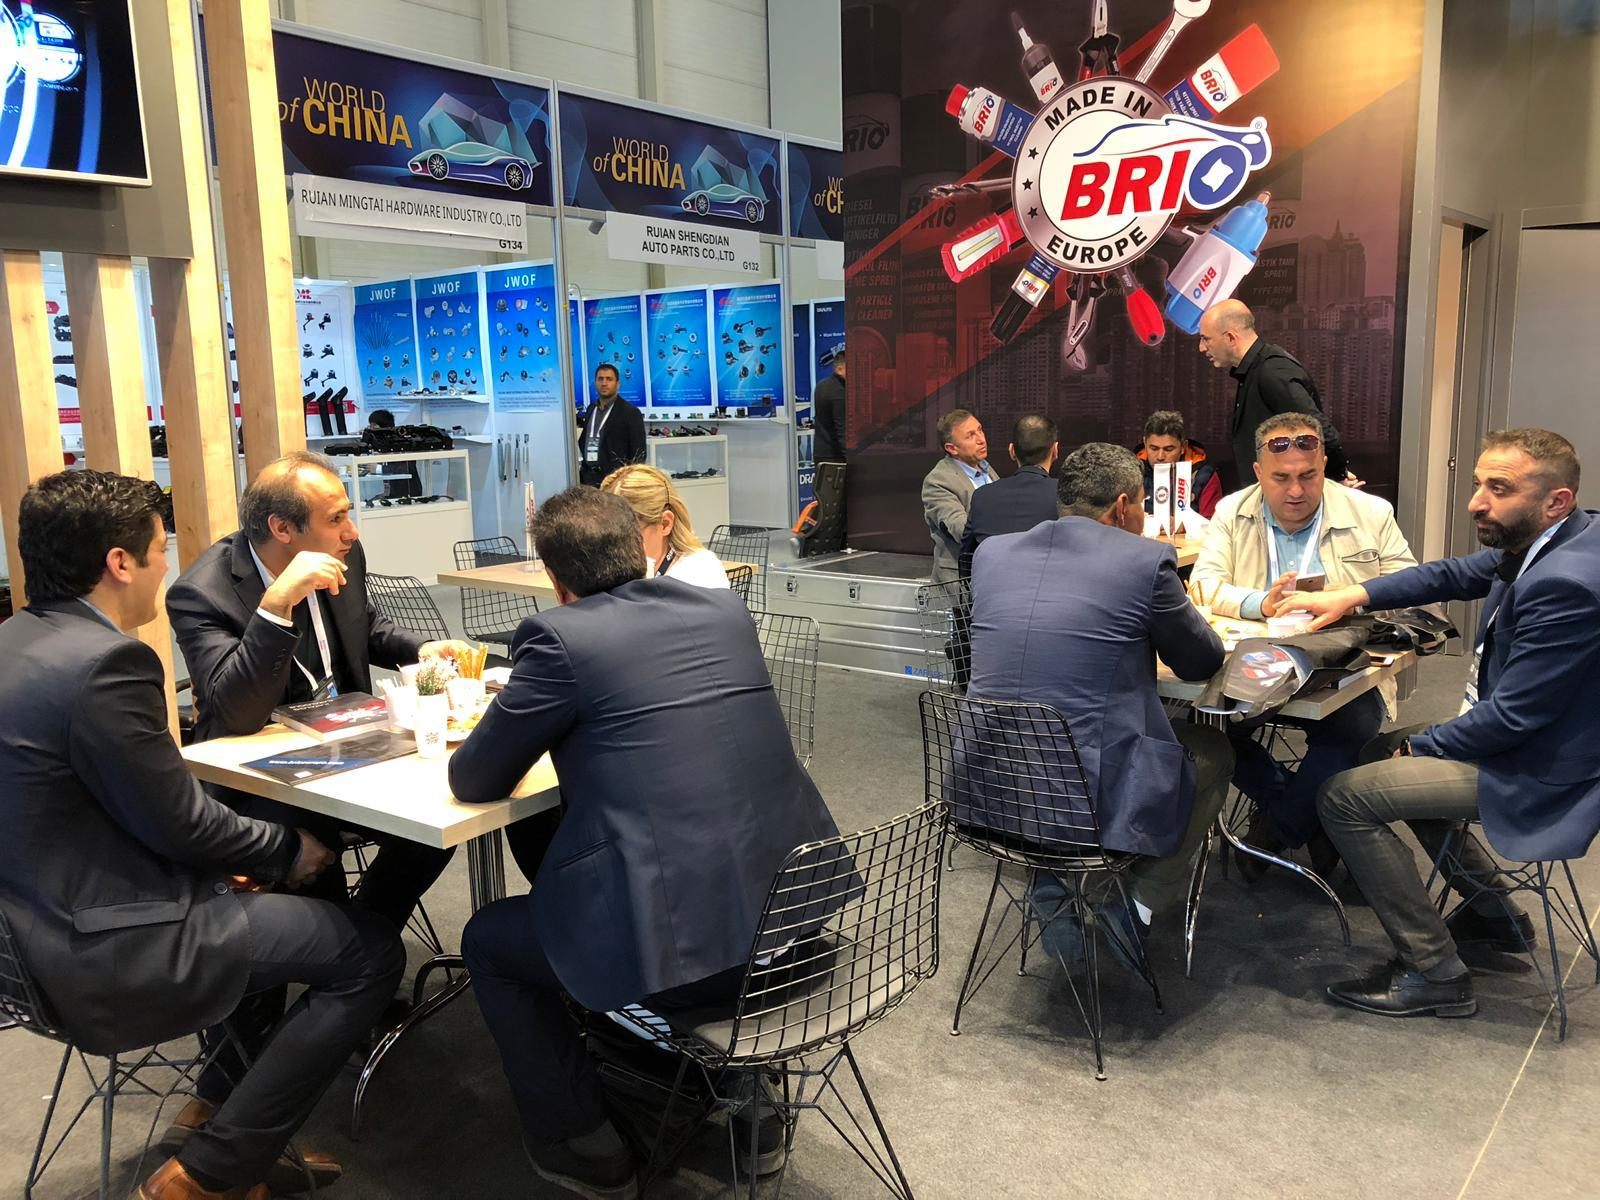 AutoMechanika2019 Brio